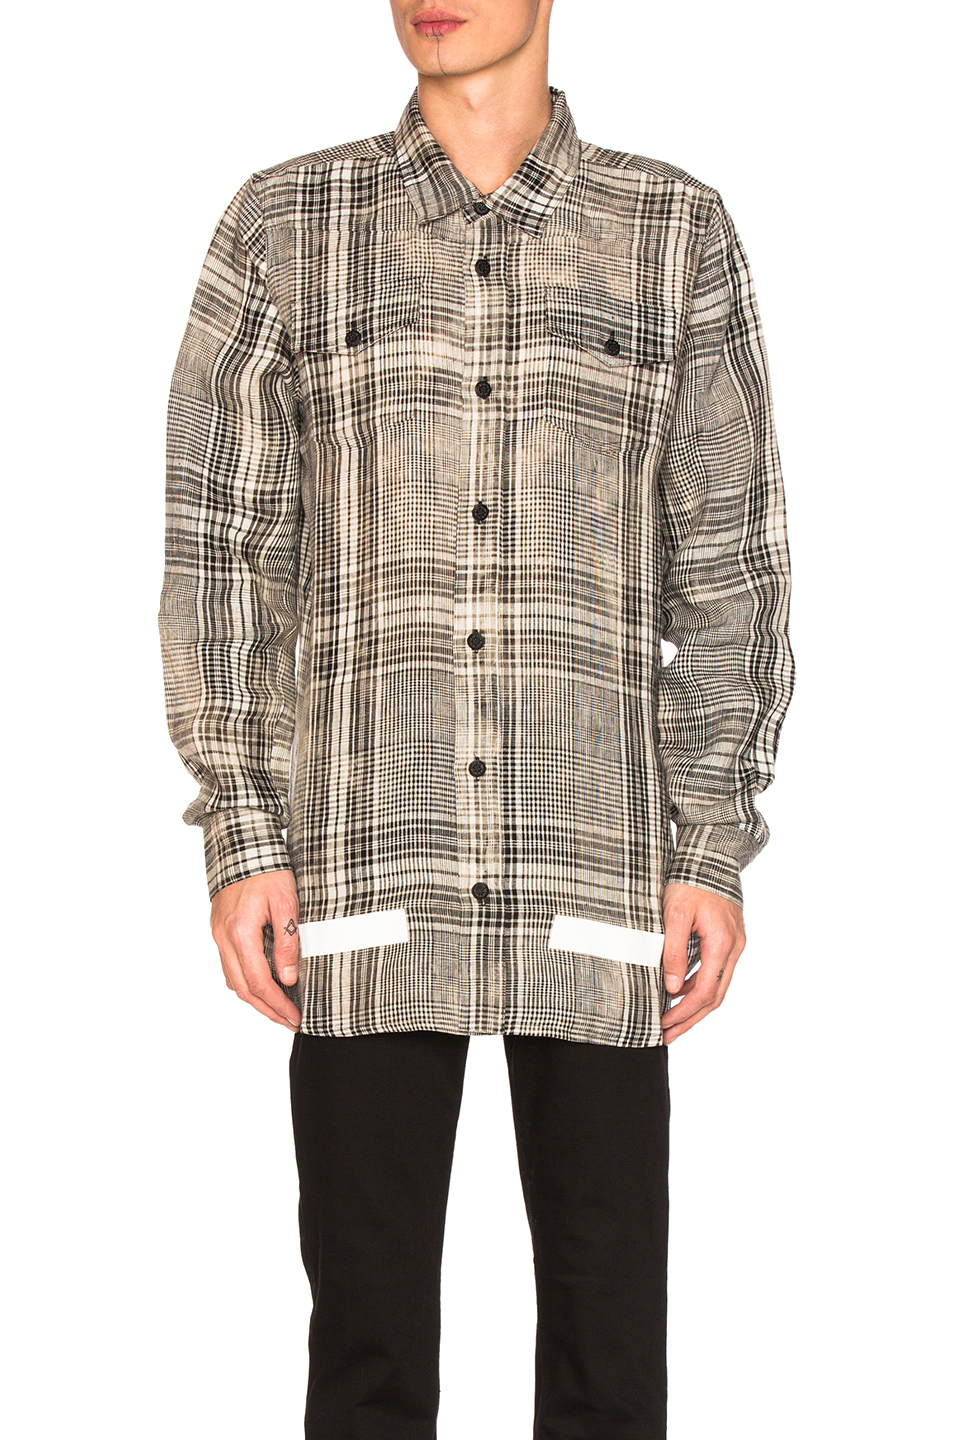 OFF-WHITE Linen Check Shirt in Black,Checkered & Plaid